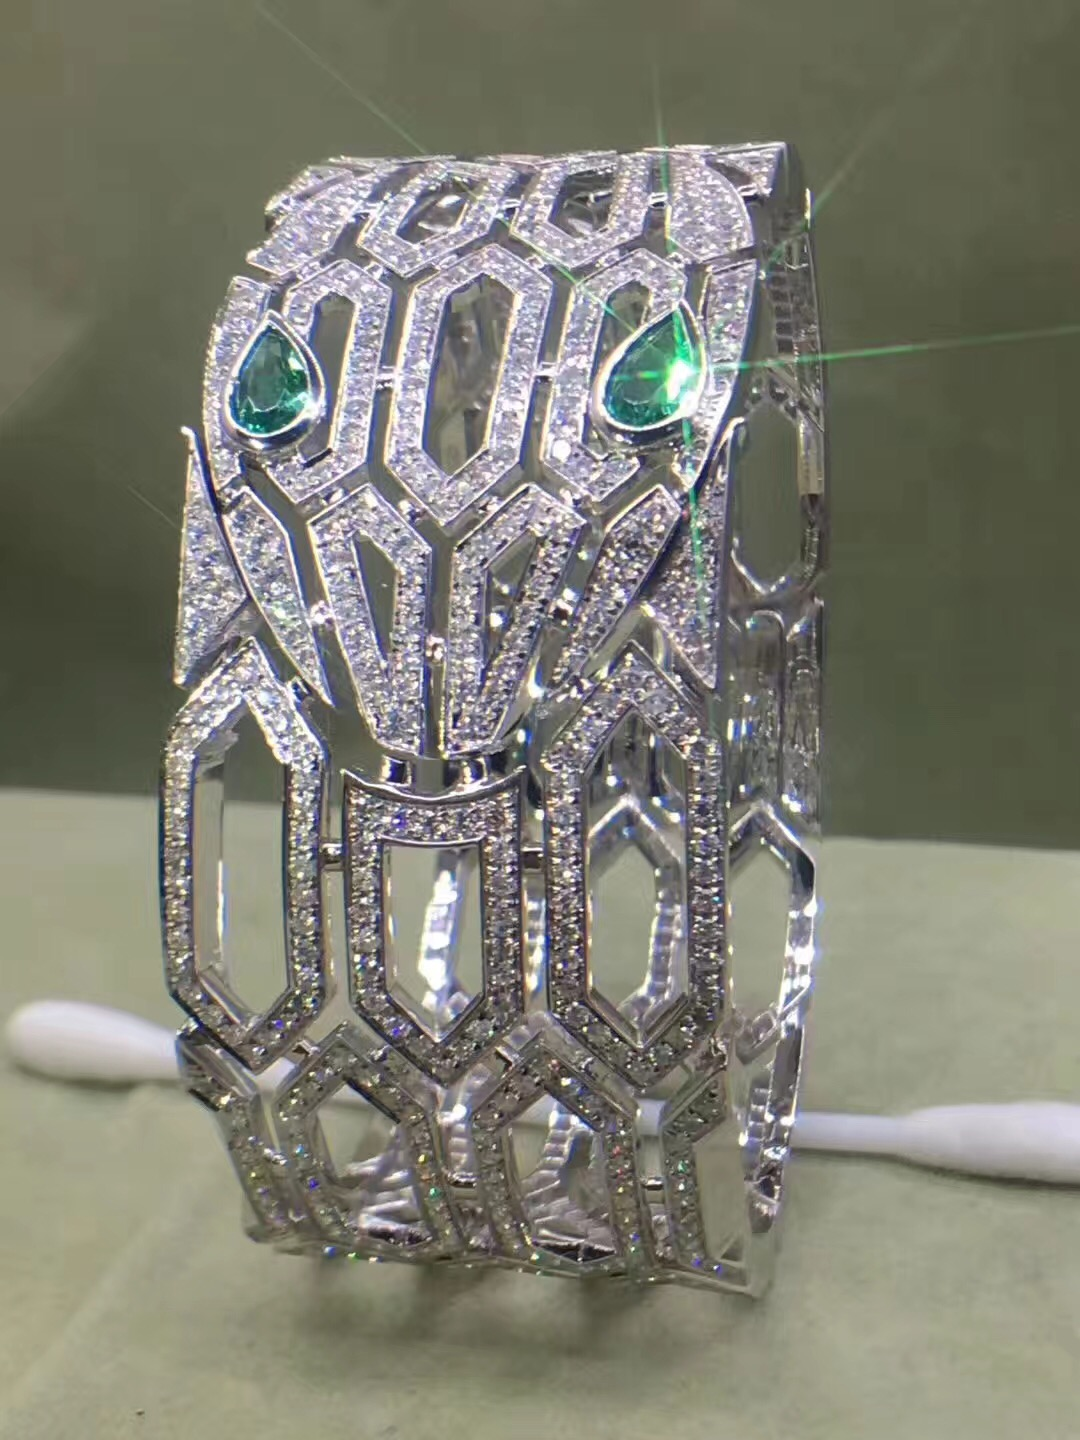 Inspired Bvlgari Serpenti Bracelet 18kt White Gold Pave Diamond with Emerald